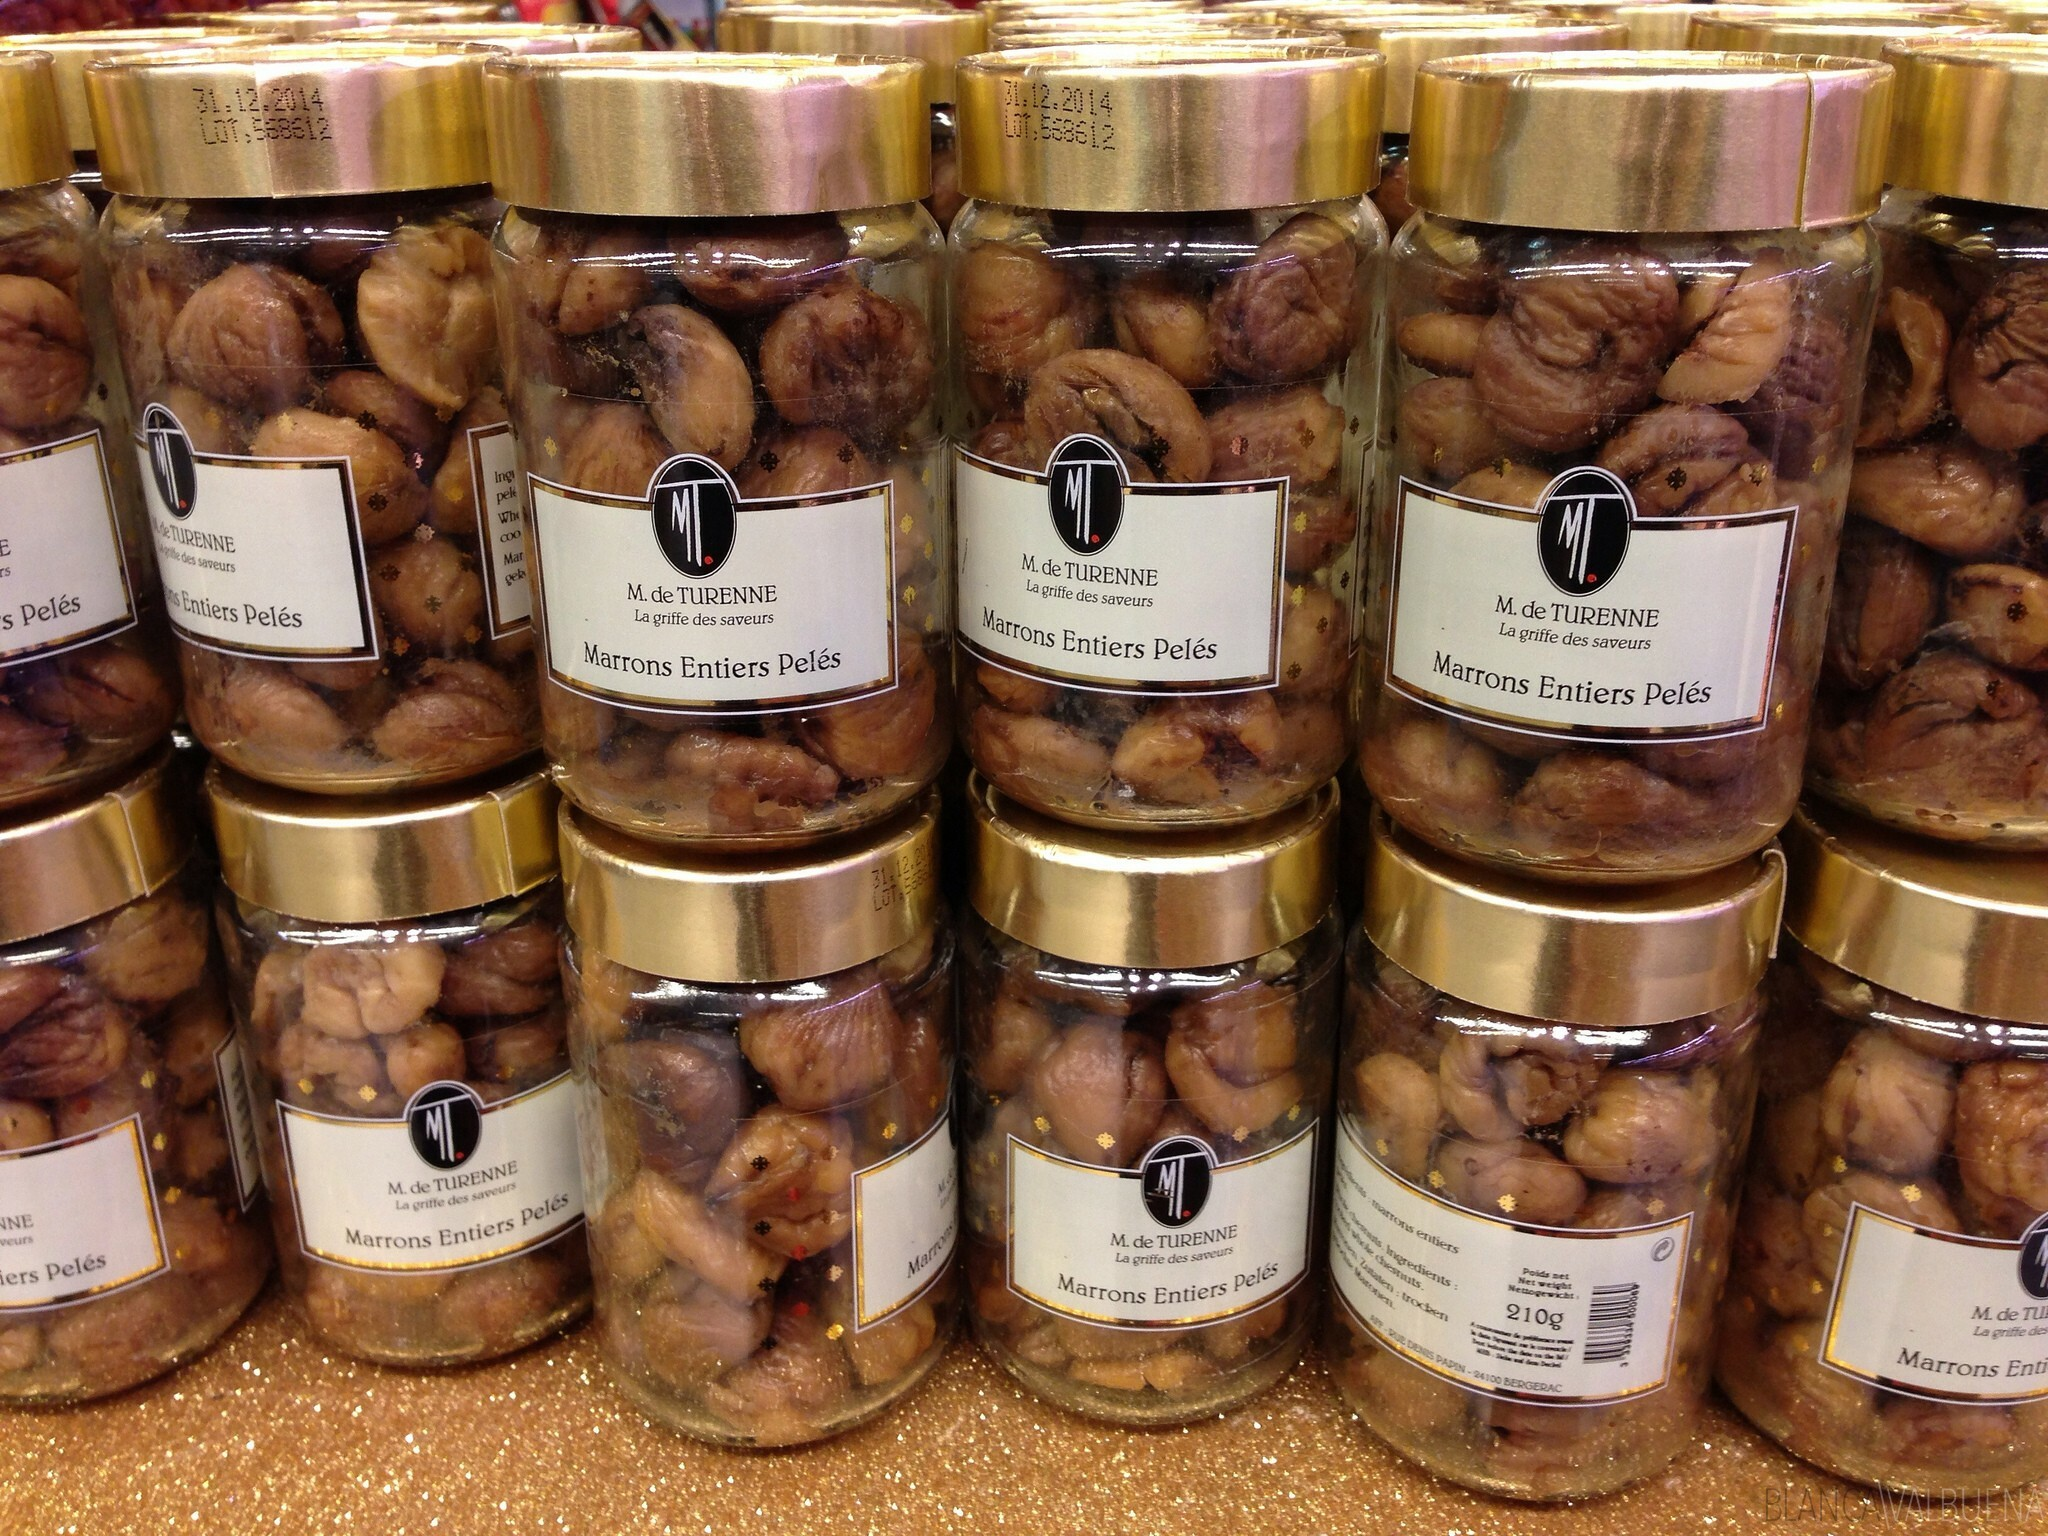 You can find Peeled Chestnuts at Galeries Lafayette On Haussman in Paris